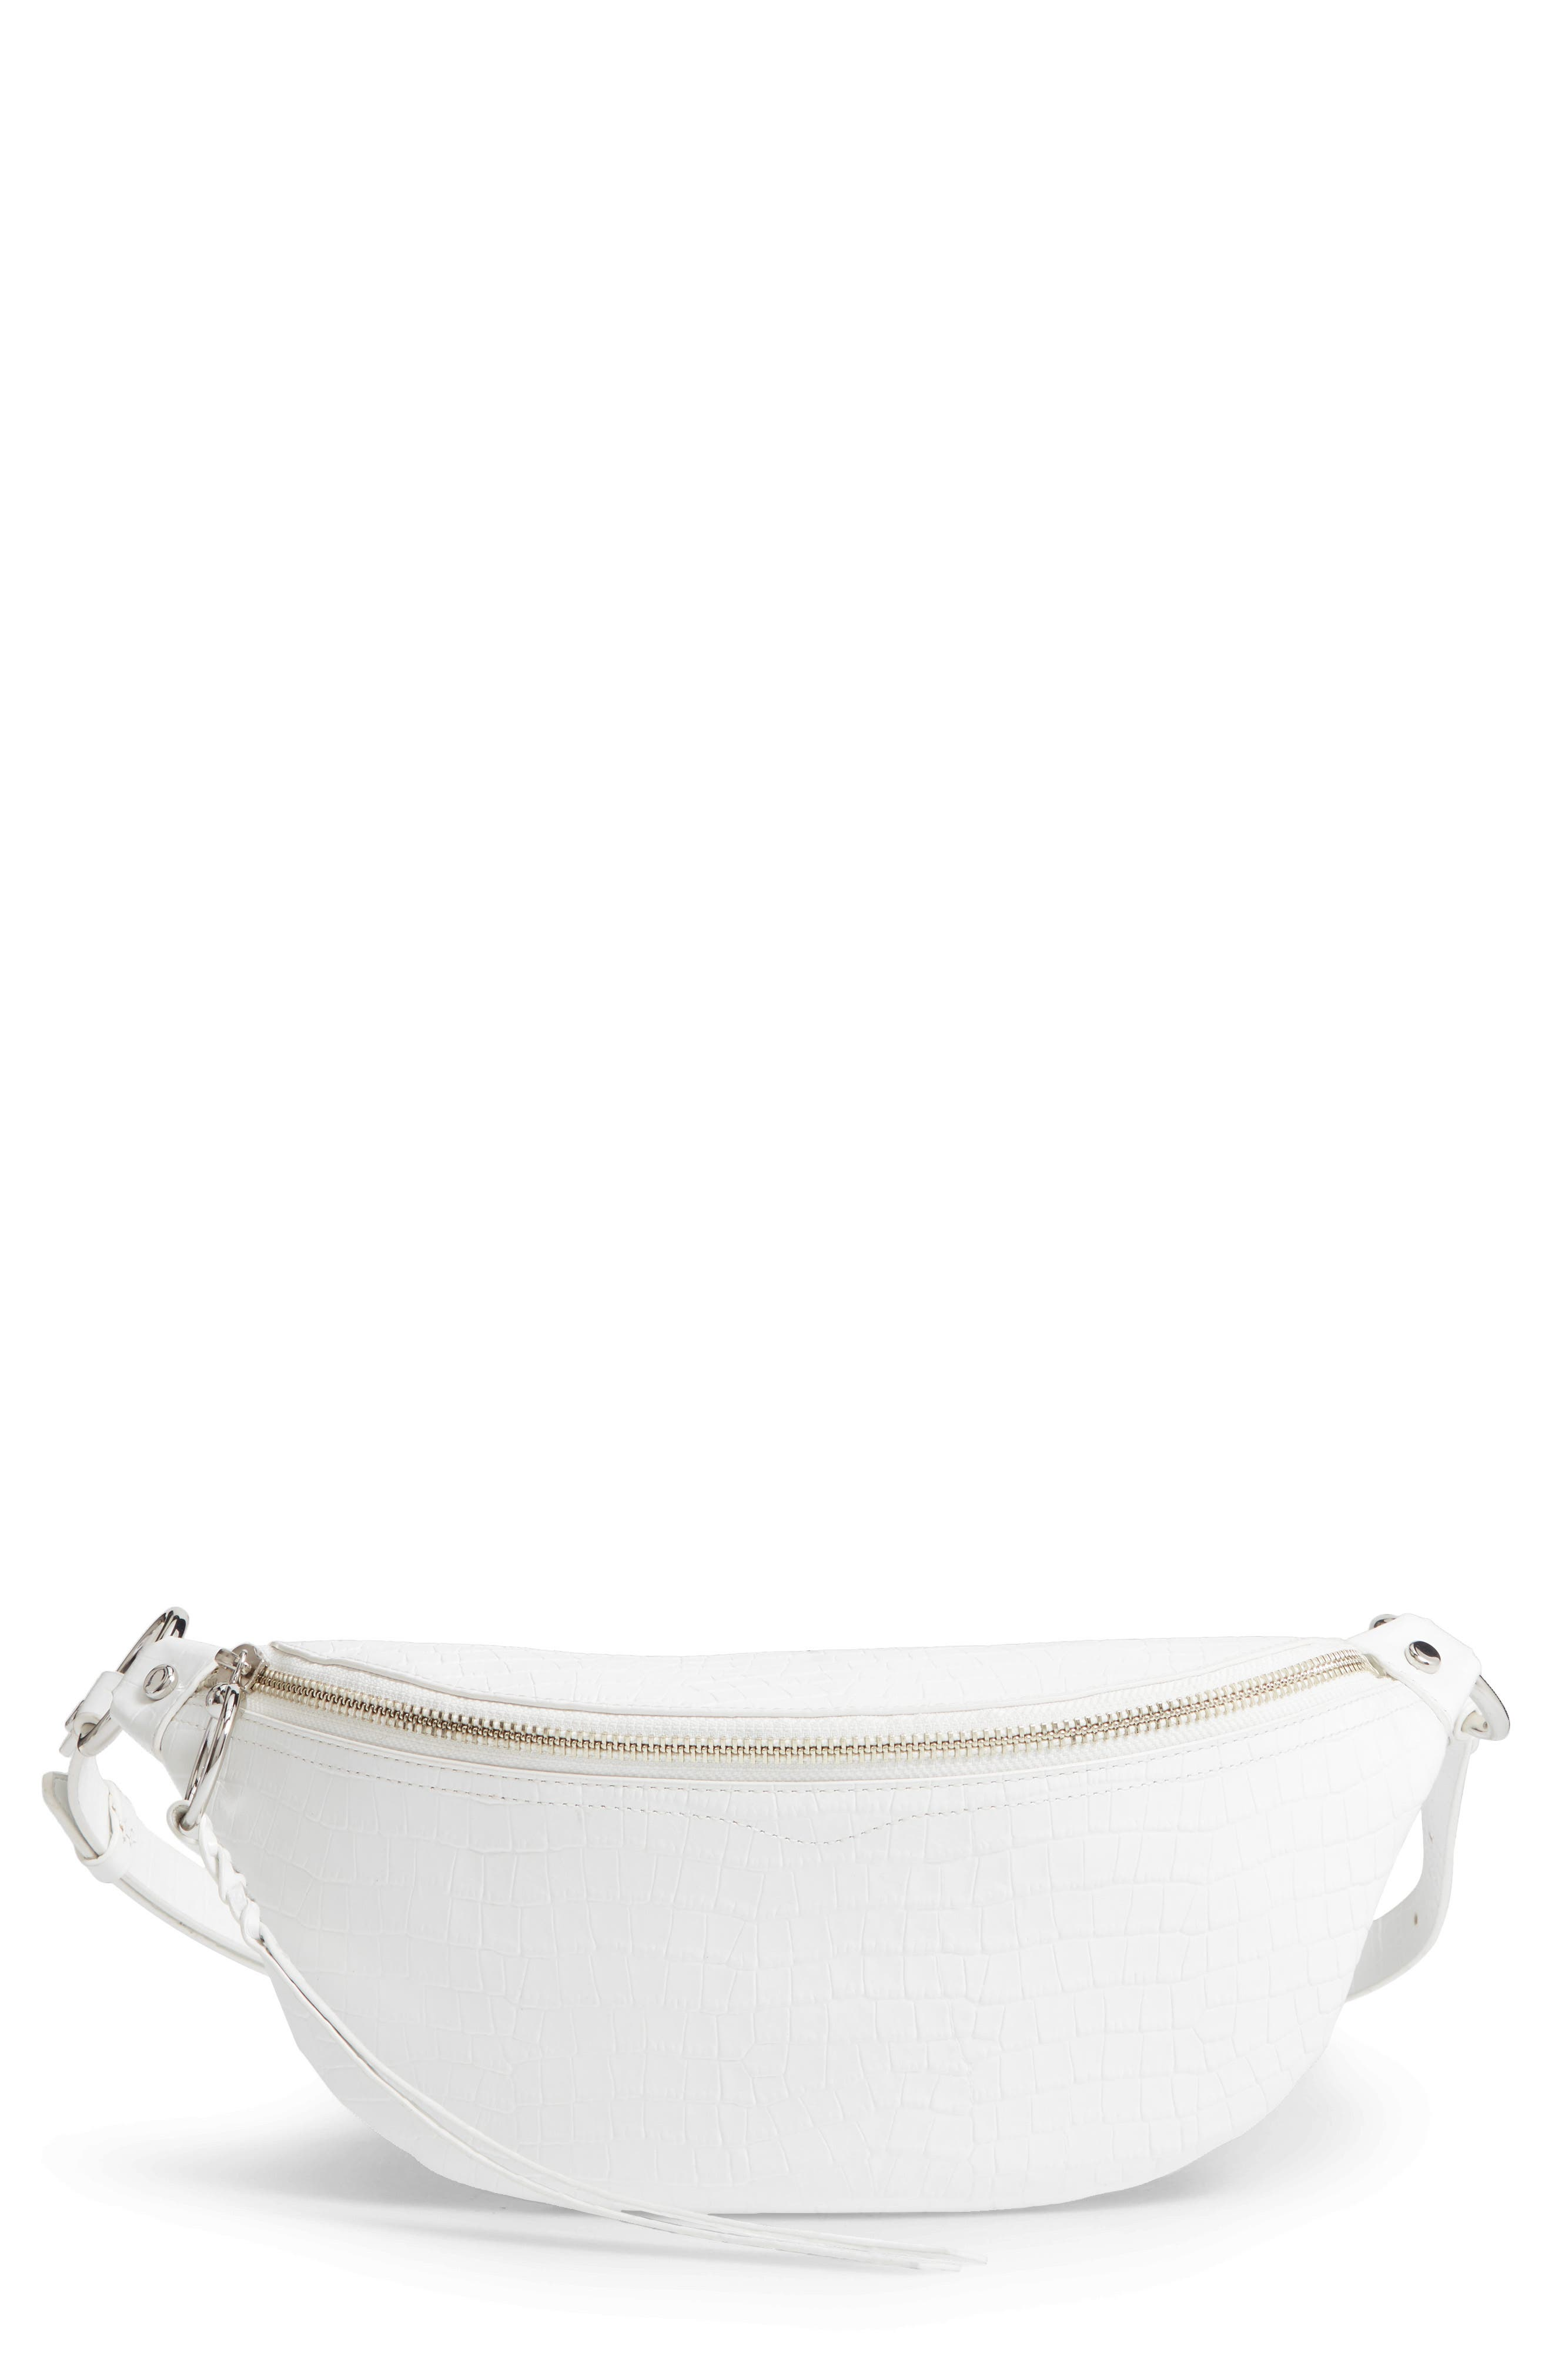 REBECCA MINKOFF, Bree Croc Embossed Leather Belt Bag, Main thumbnail 1, color, OPTIC WHITE